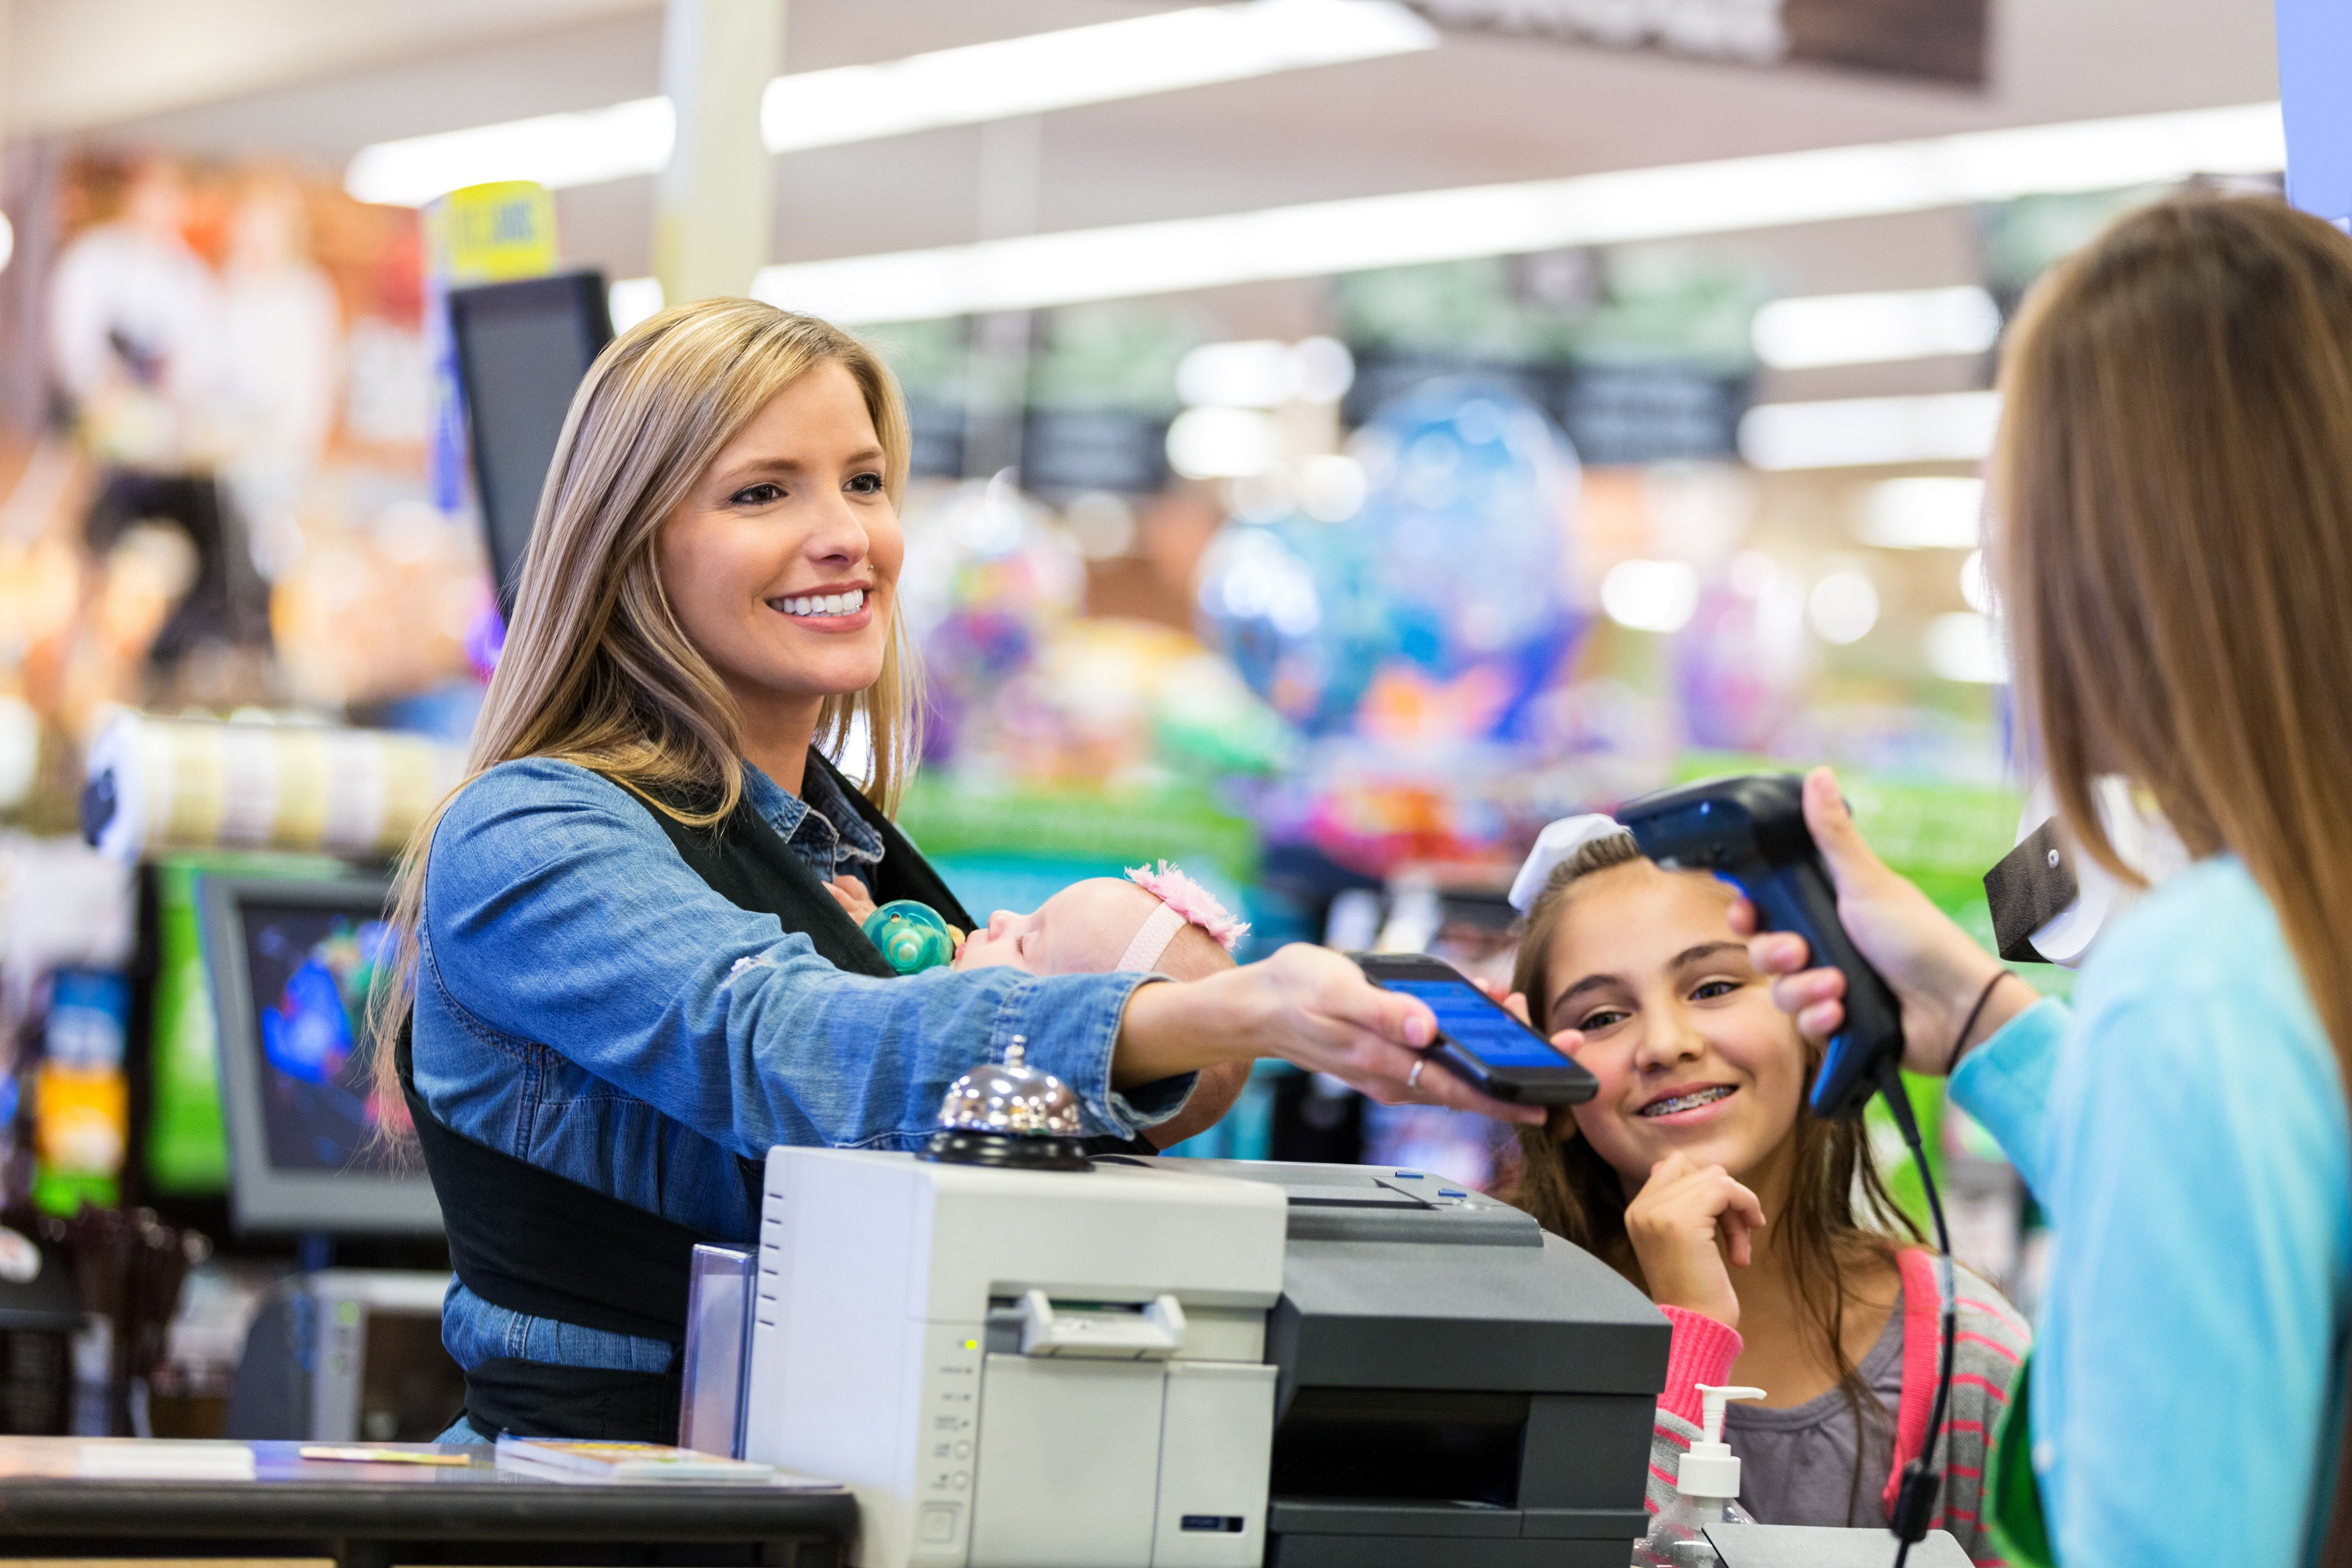 Mother and daughter at checkout using a smart phone to pay for purchases in store.